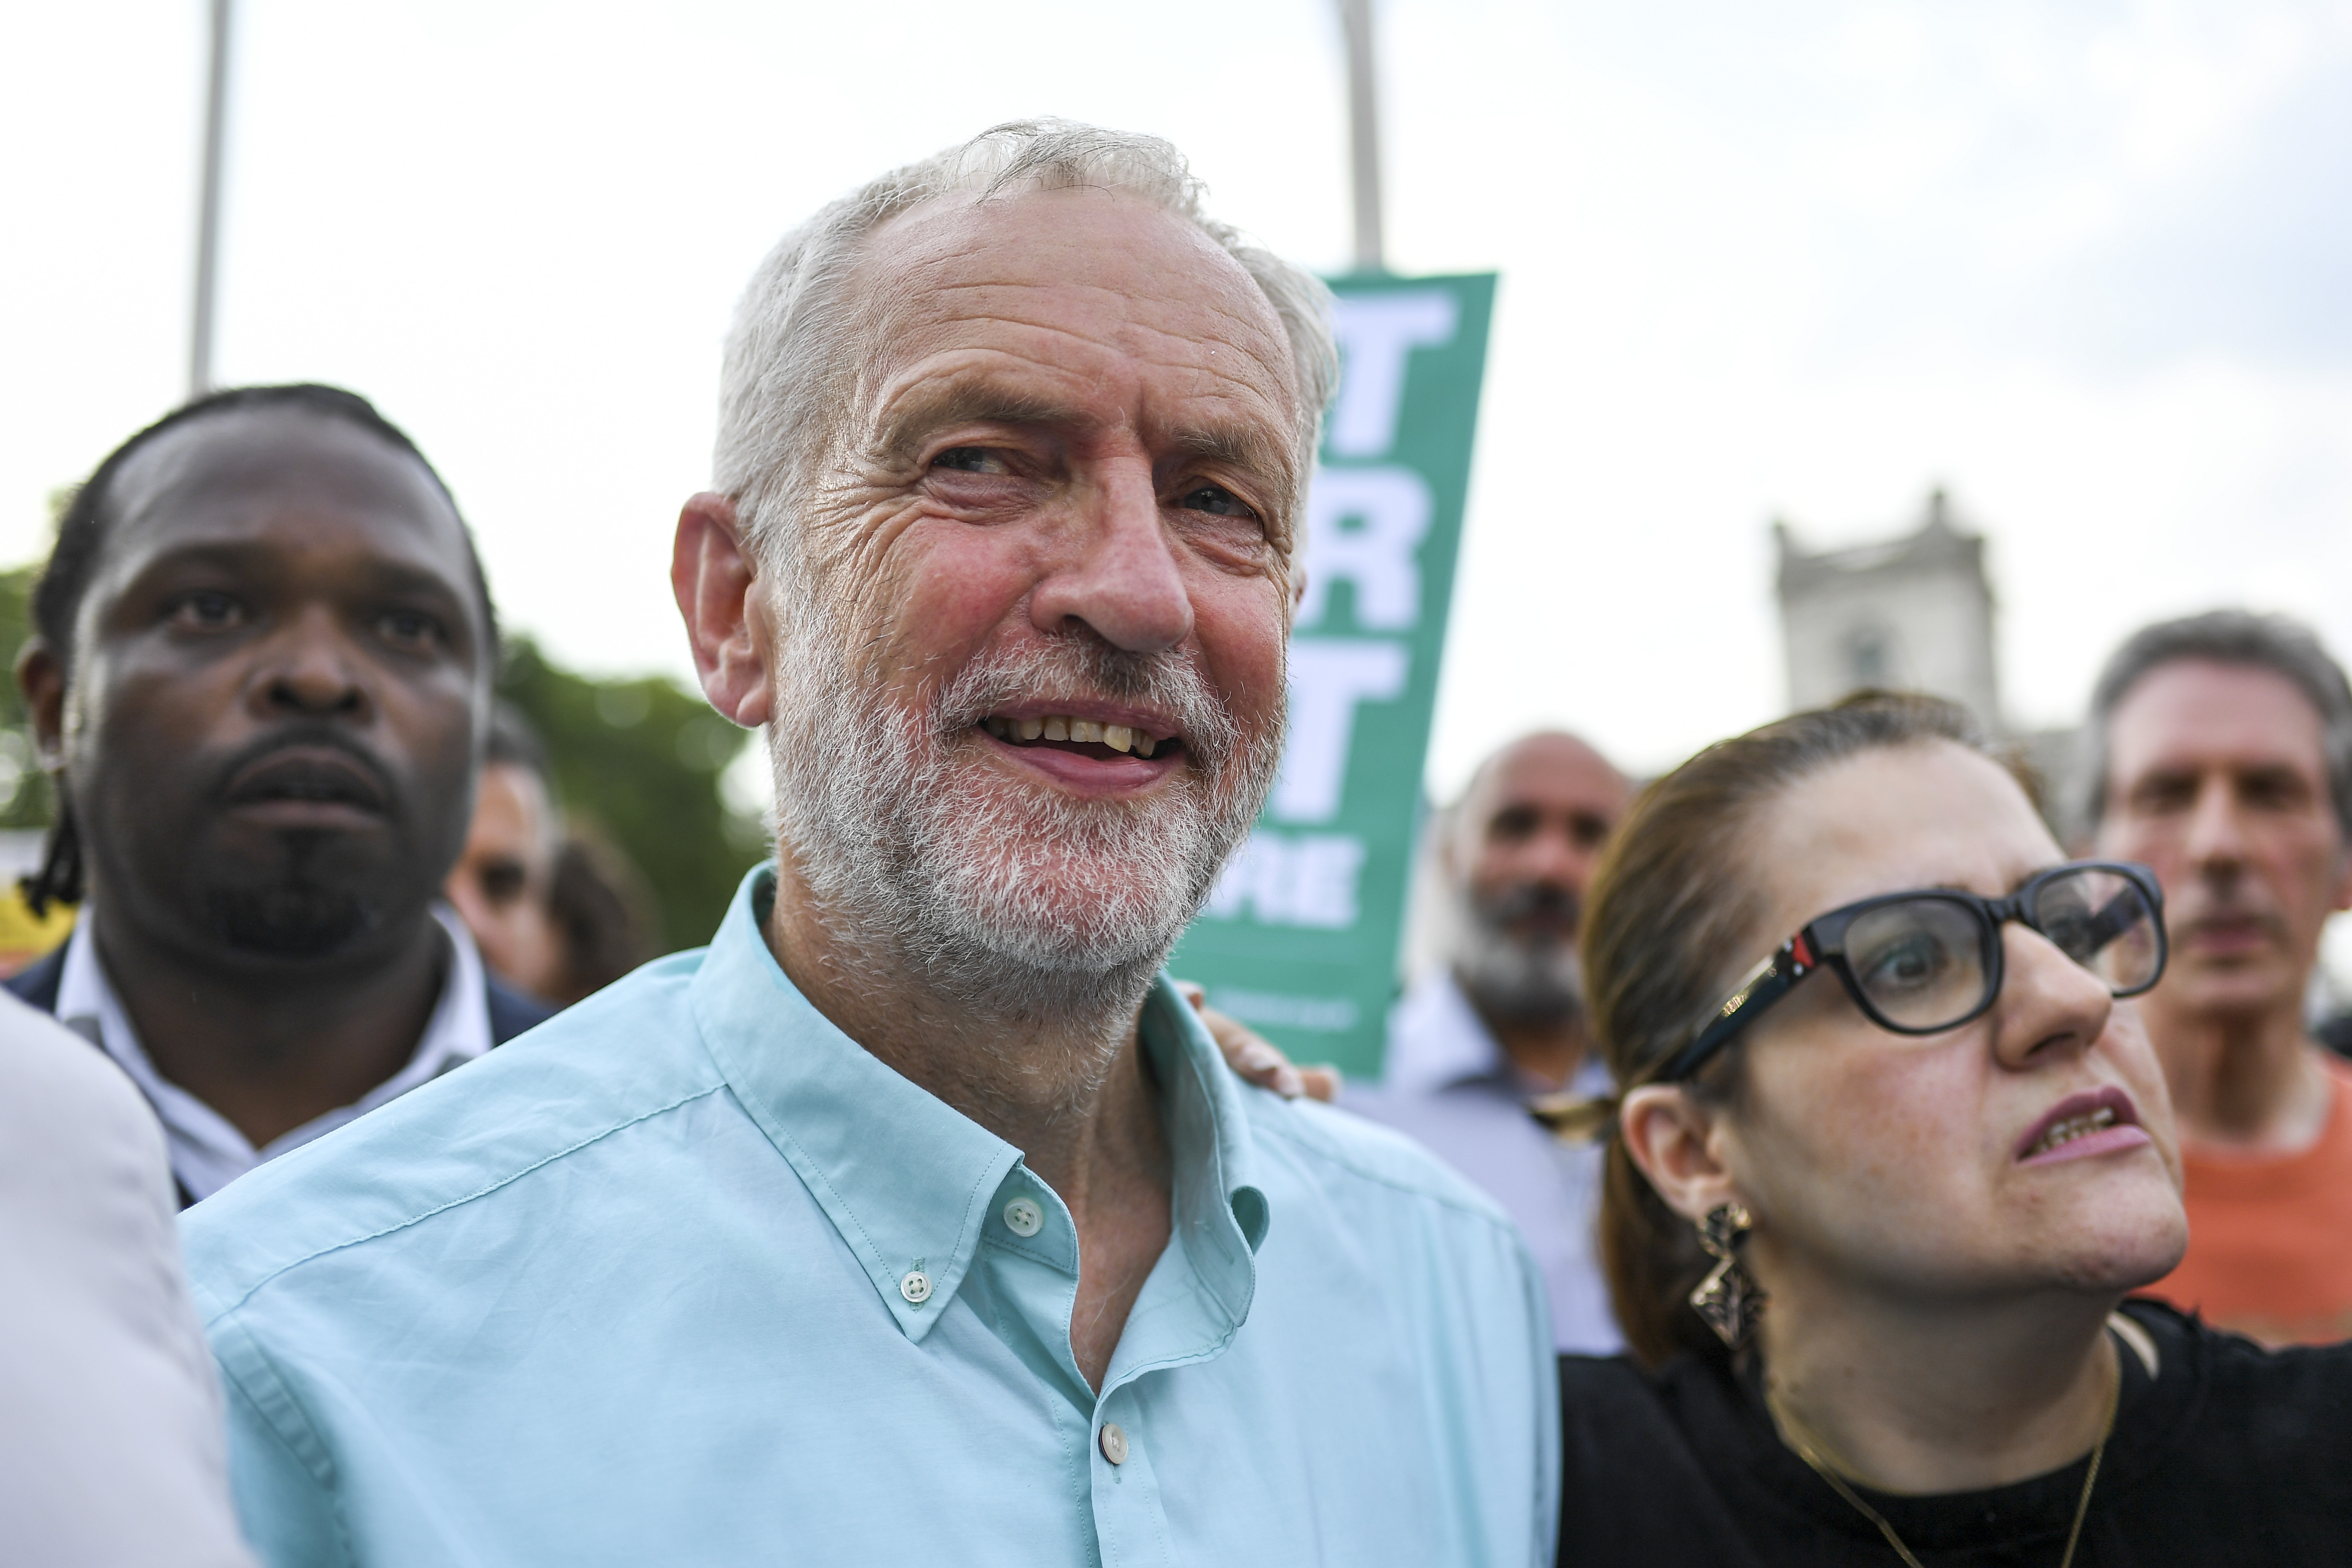 Corbyn's political chess move on Brexit